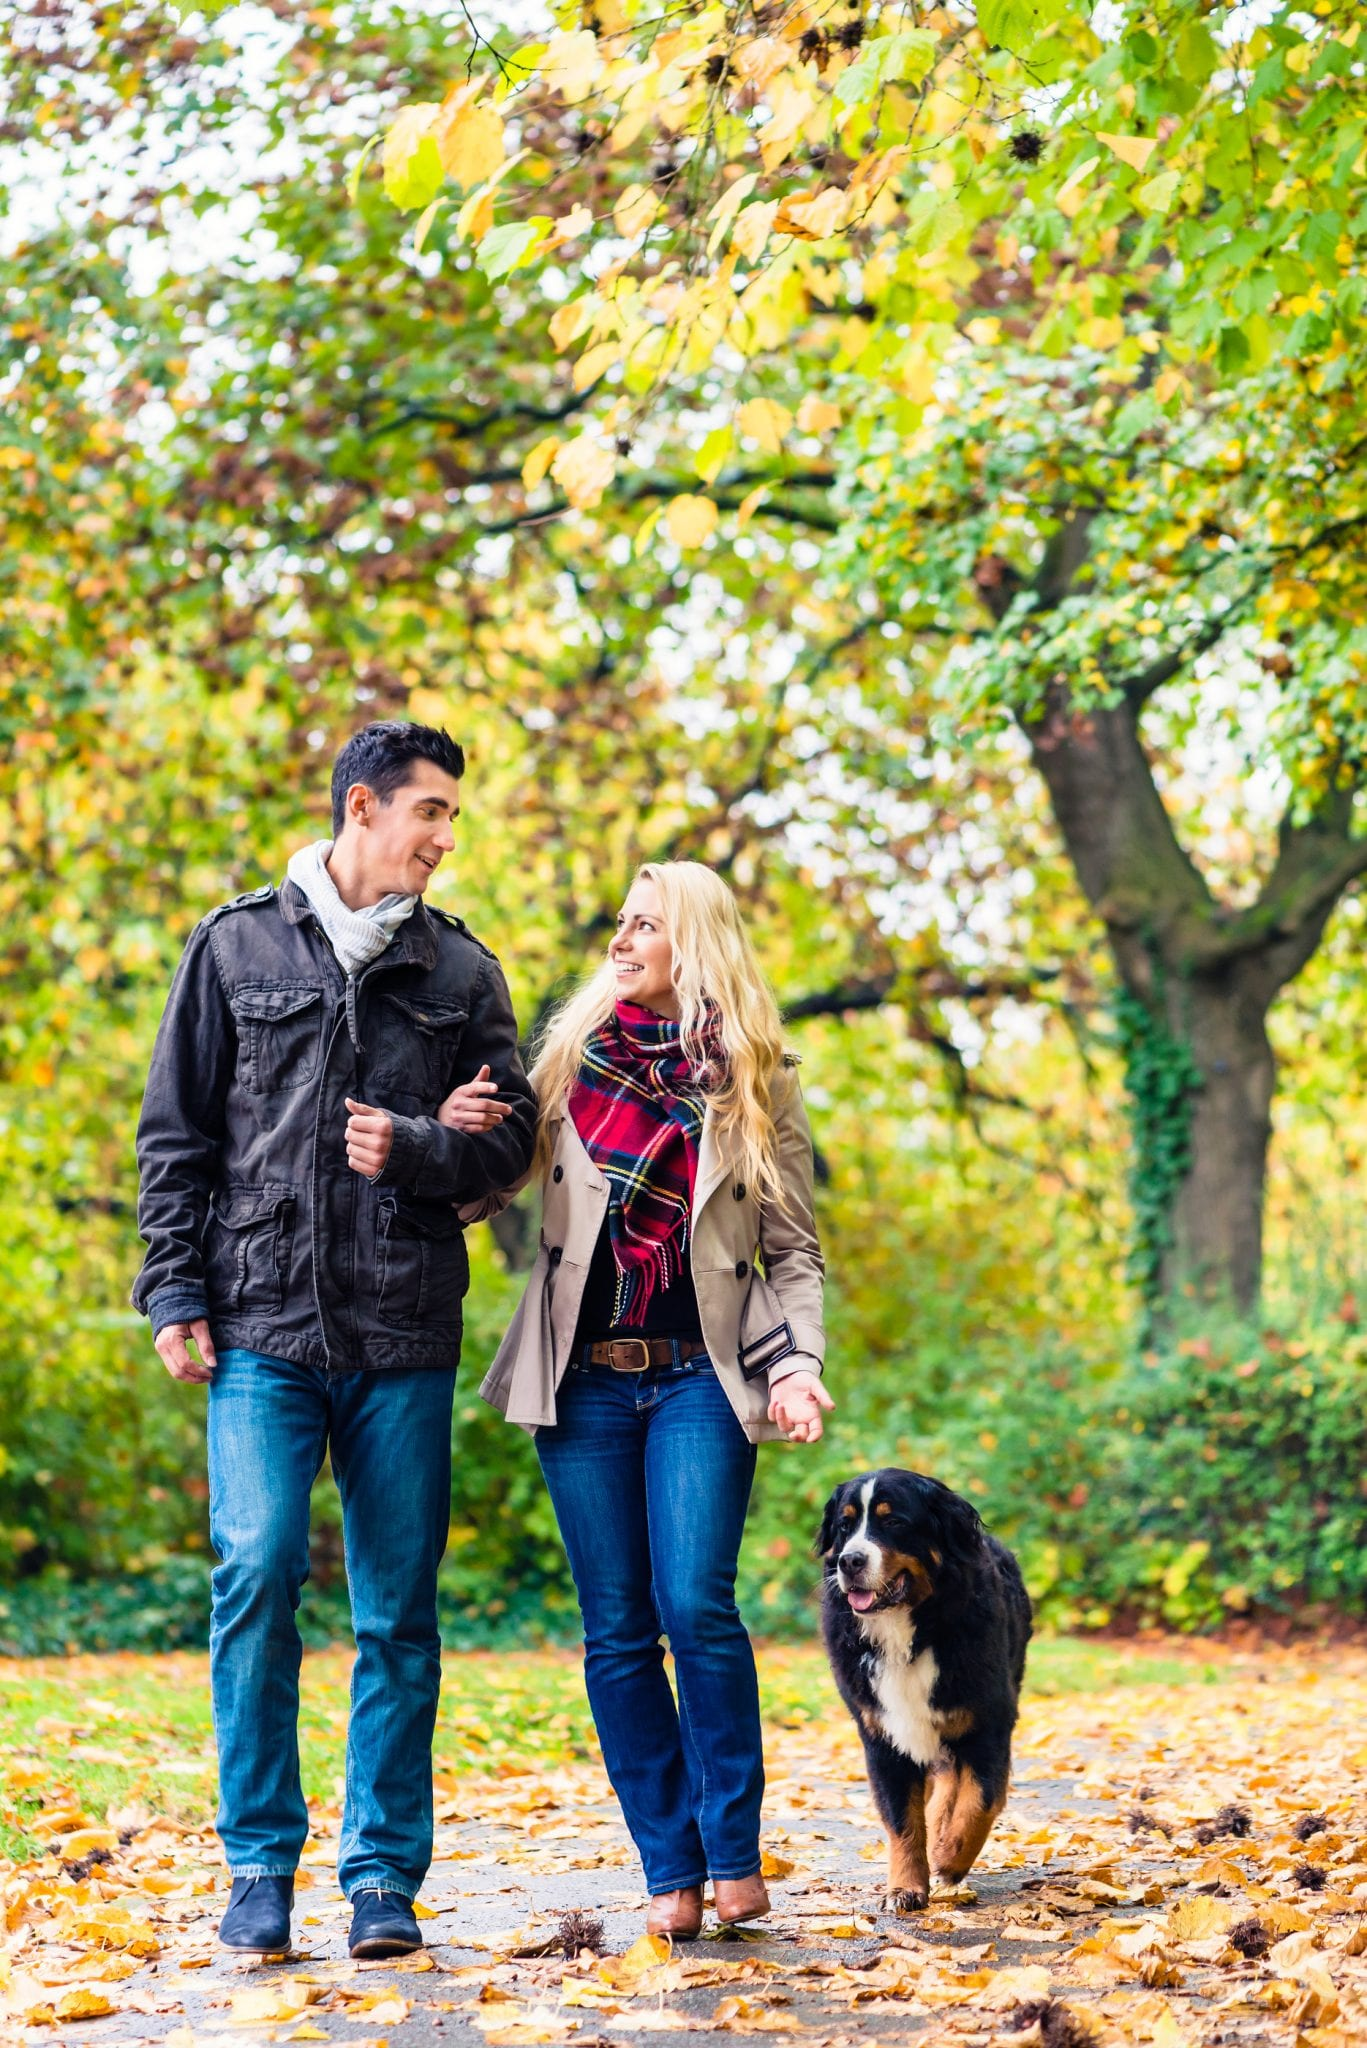 Woman and man with dog having autumn walk on a path covered with foliage